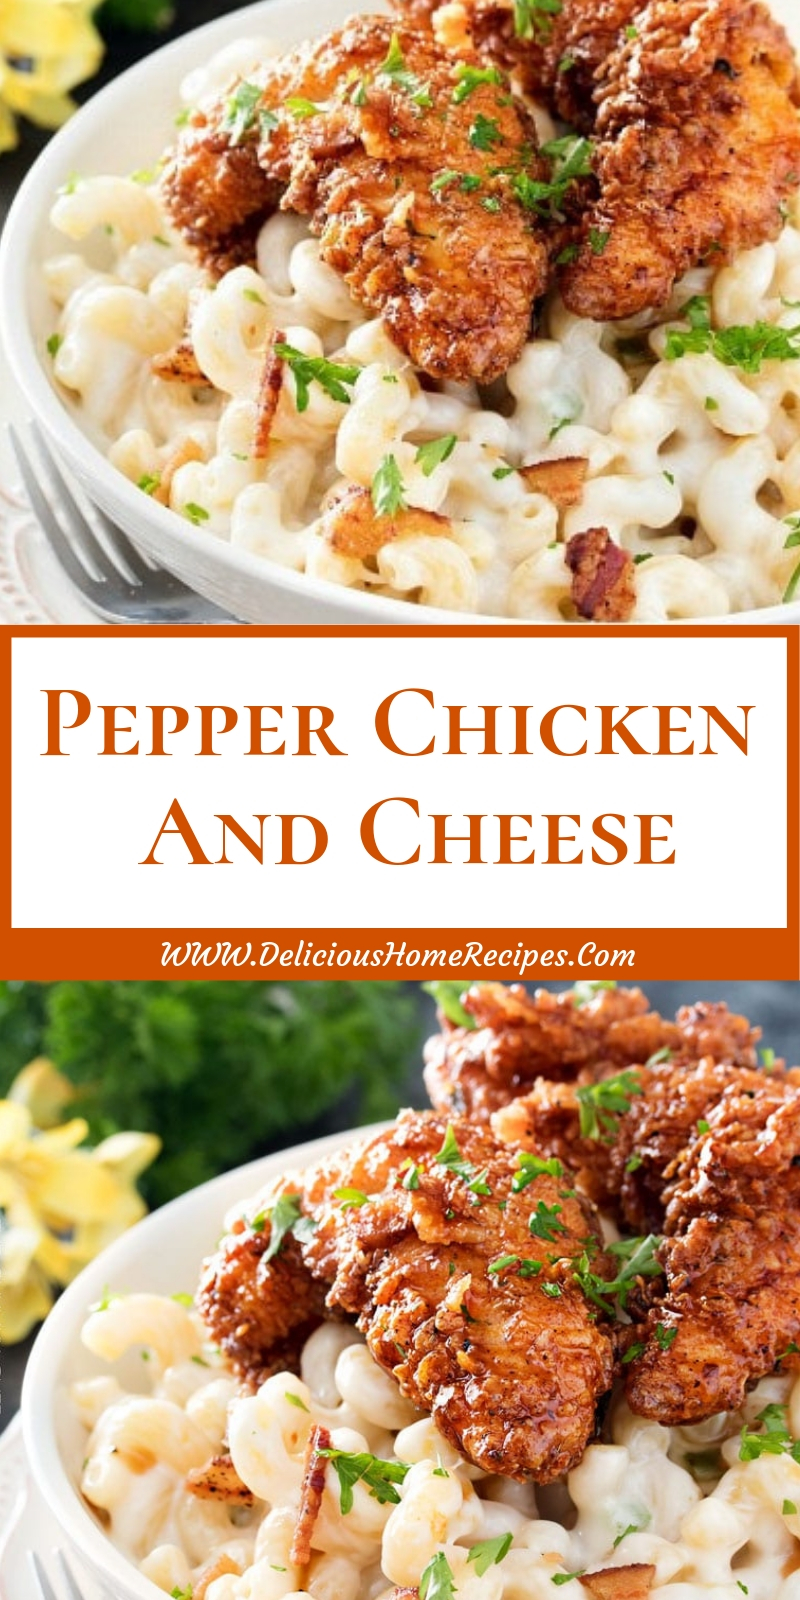 Pepper Chicken And Cheese